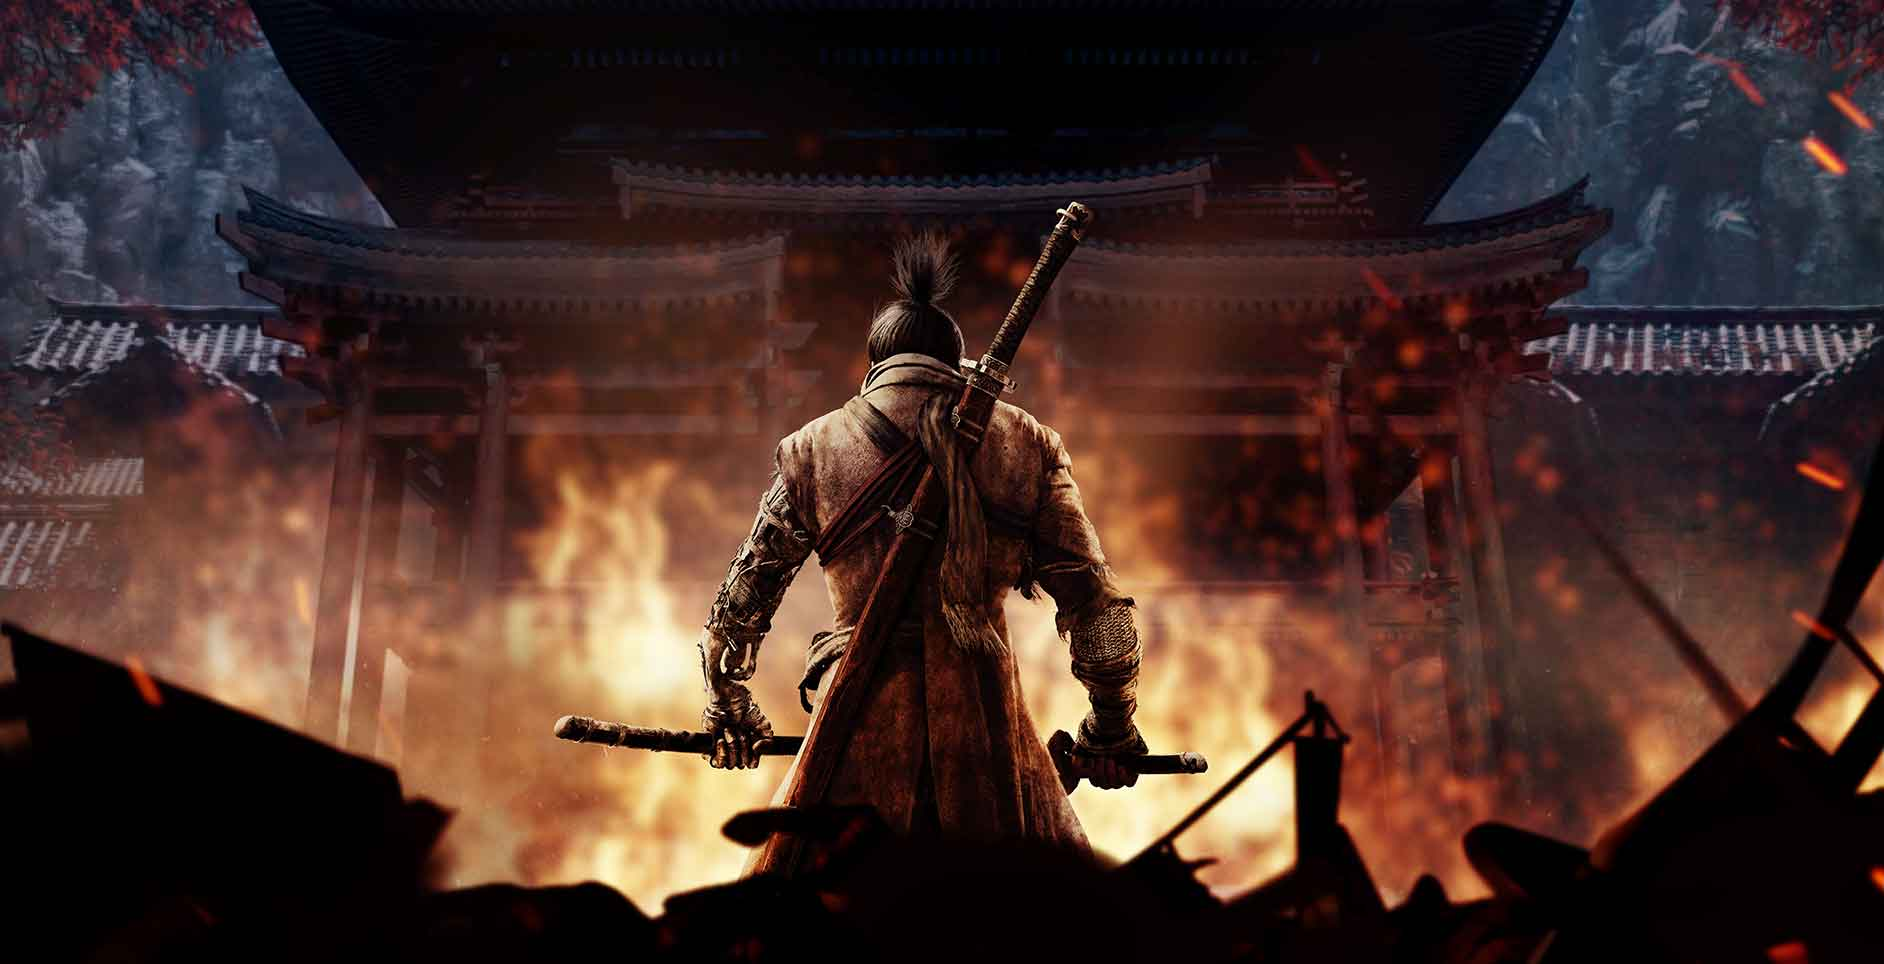 The latest Sekiro story trailer shows some insight on the game's lore